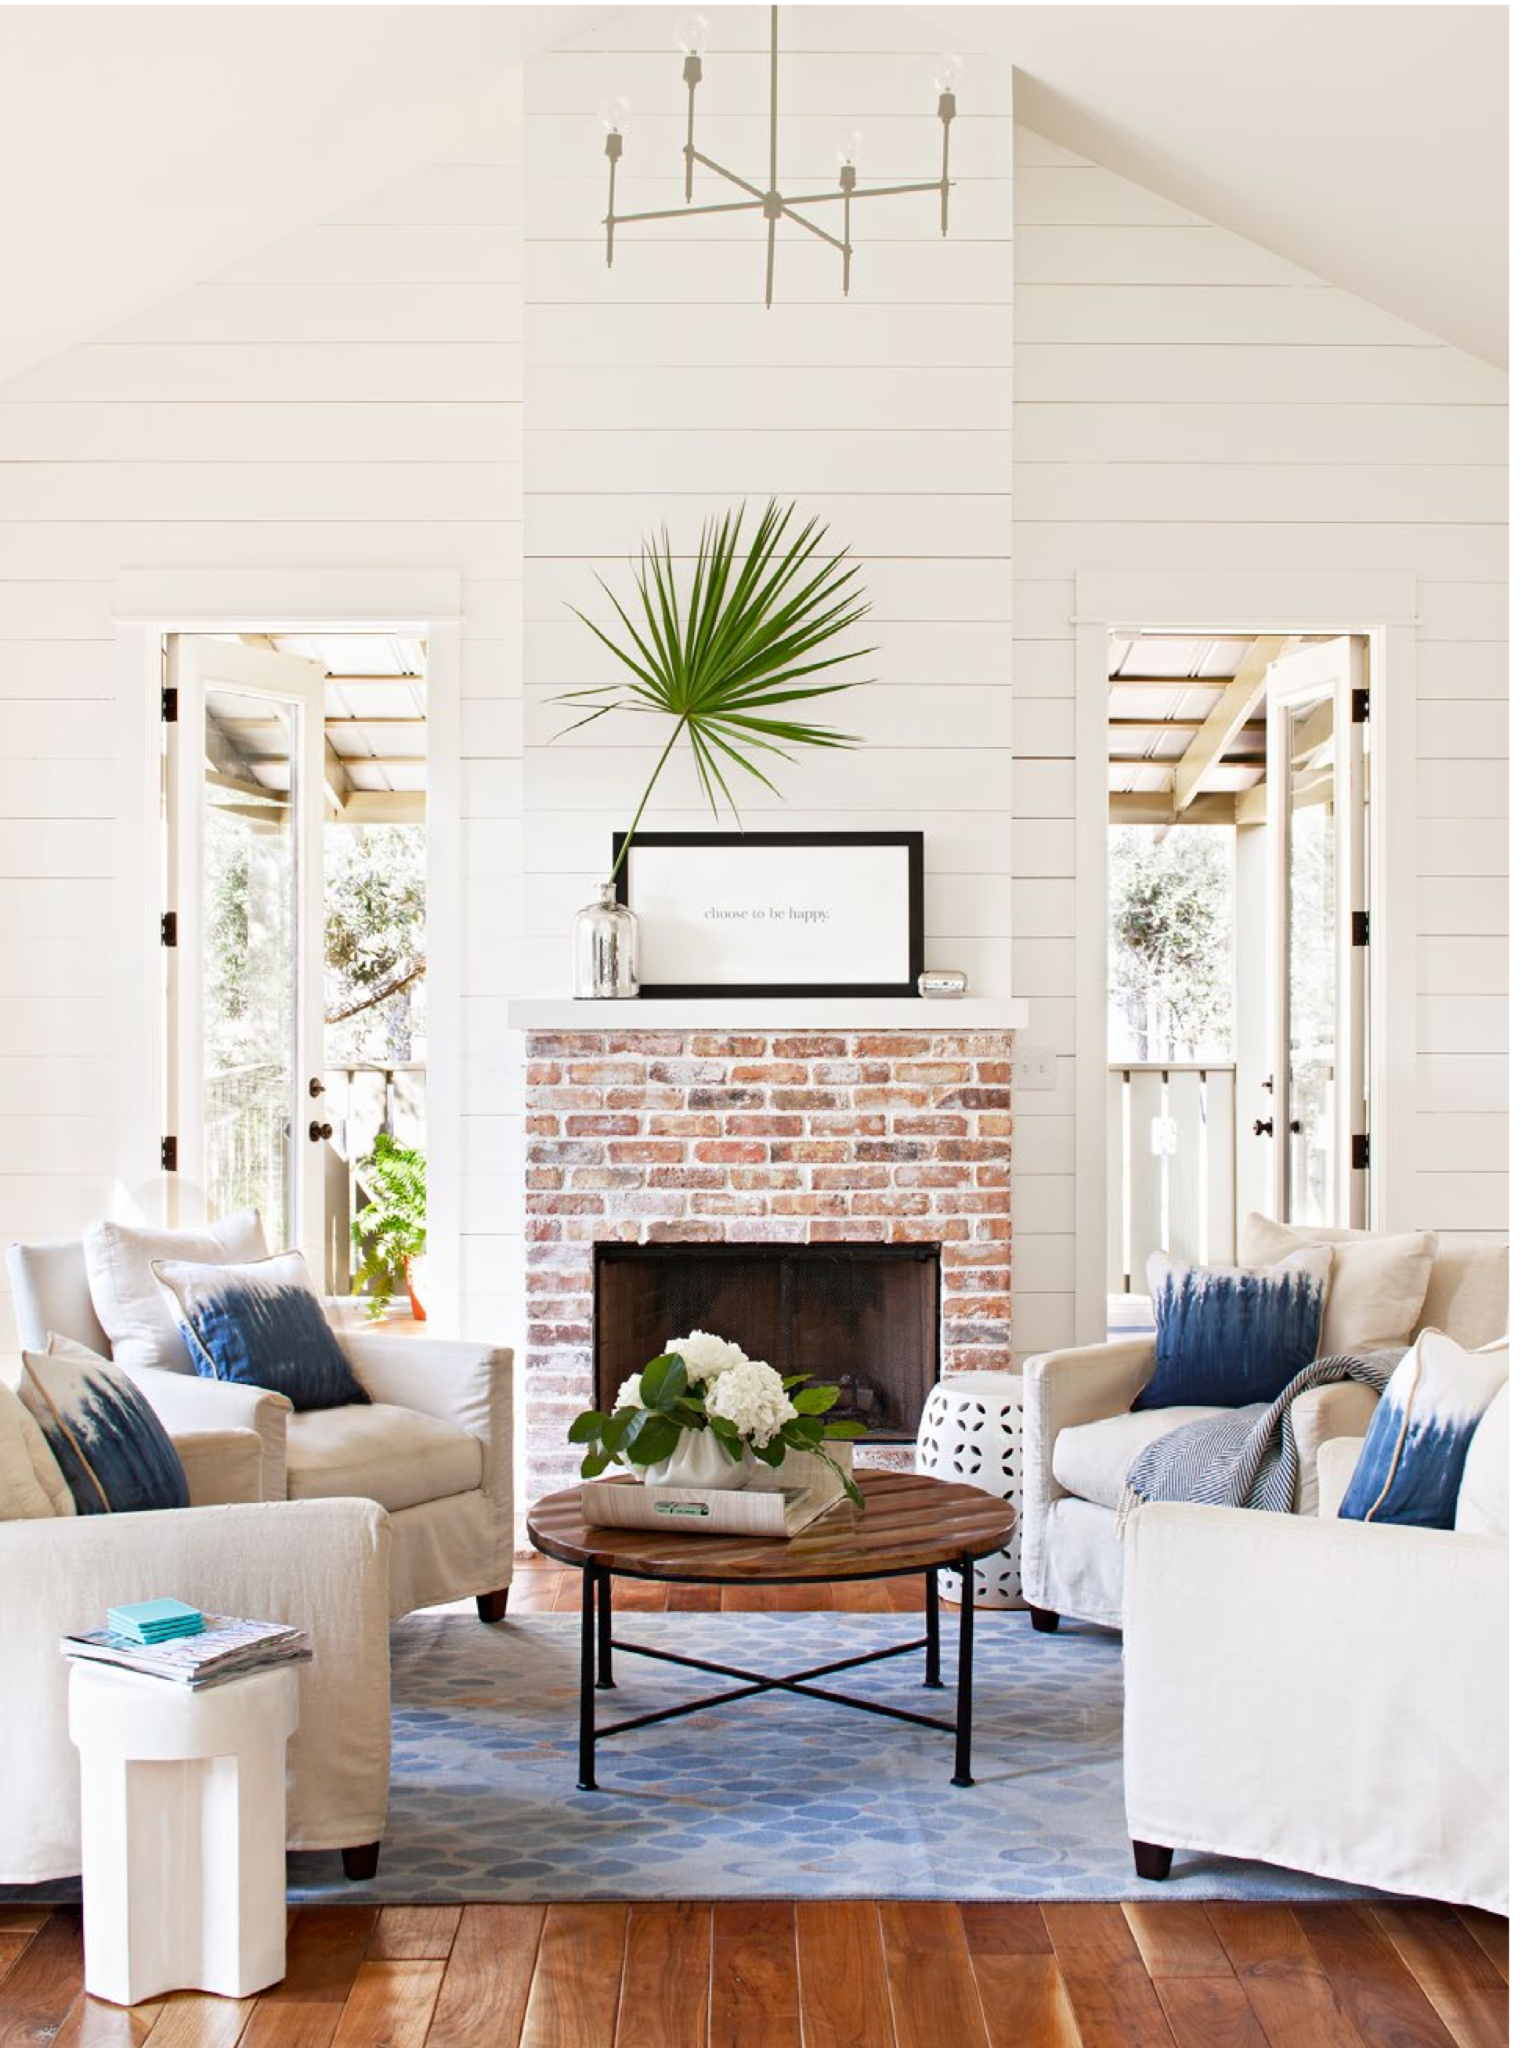 Pin by sylvieee on Home style so fresh Living room